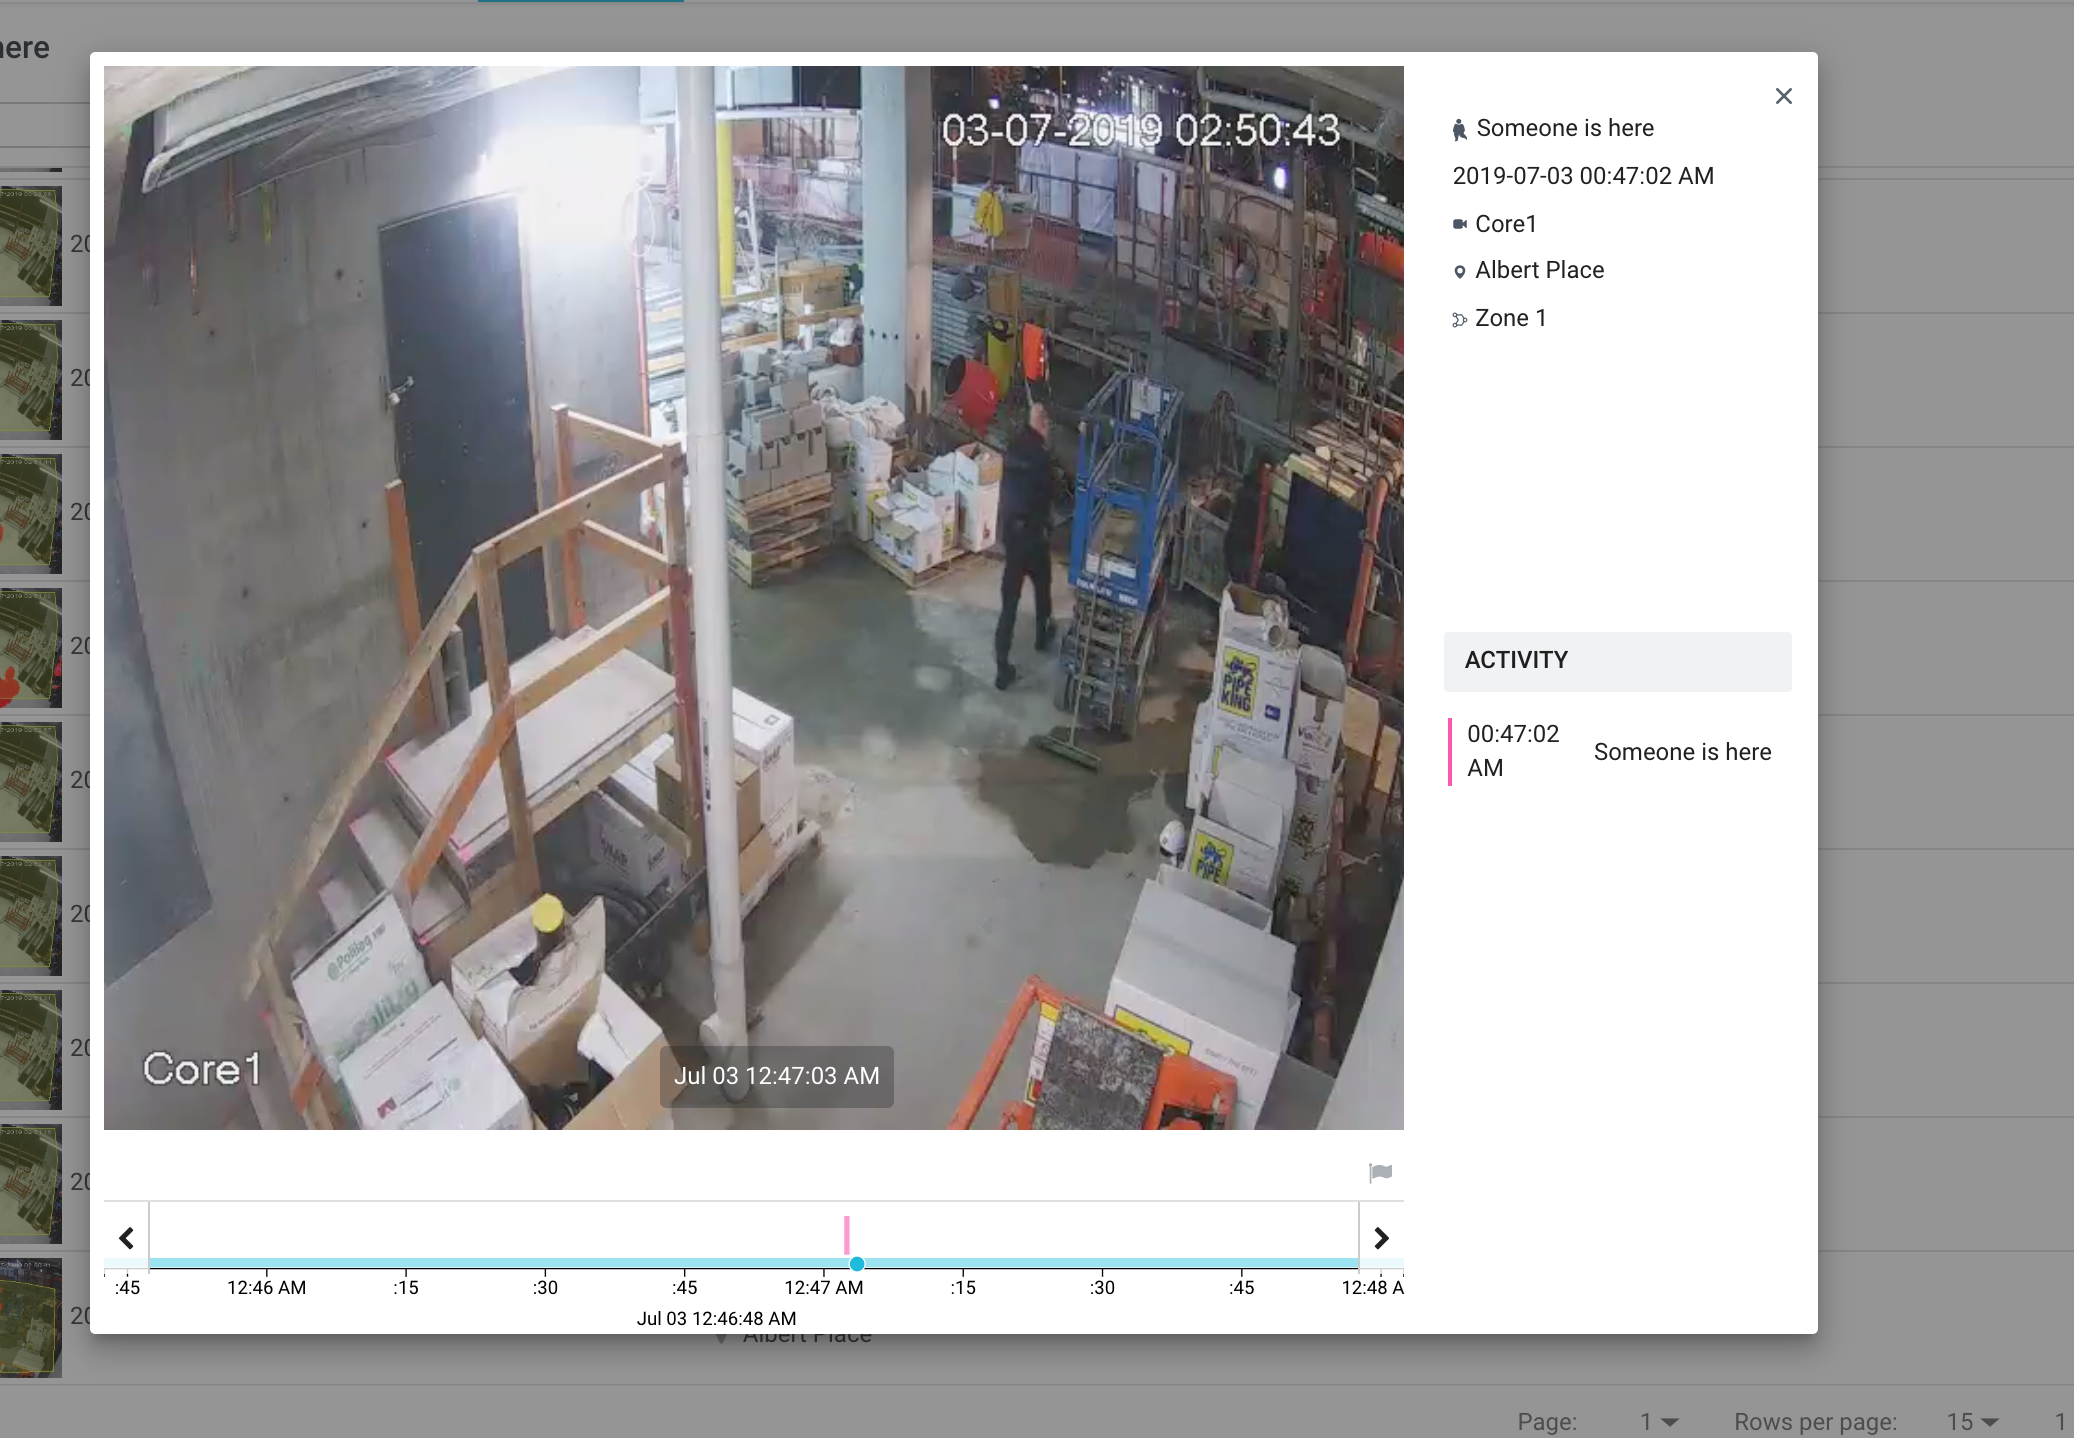 Caught on video, thieves attempt to make off with valuable construction equipment.